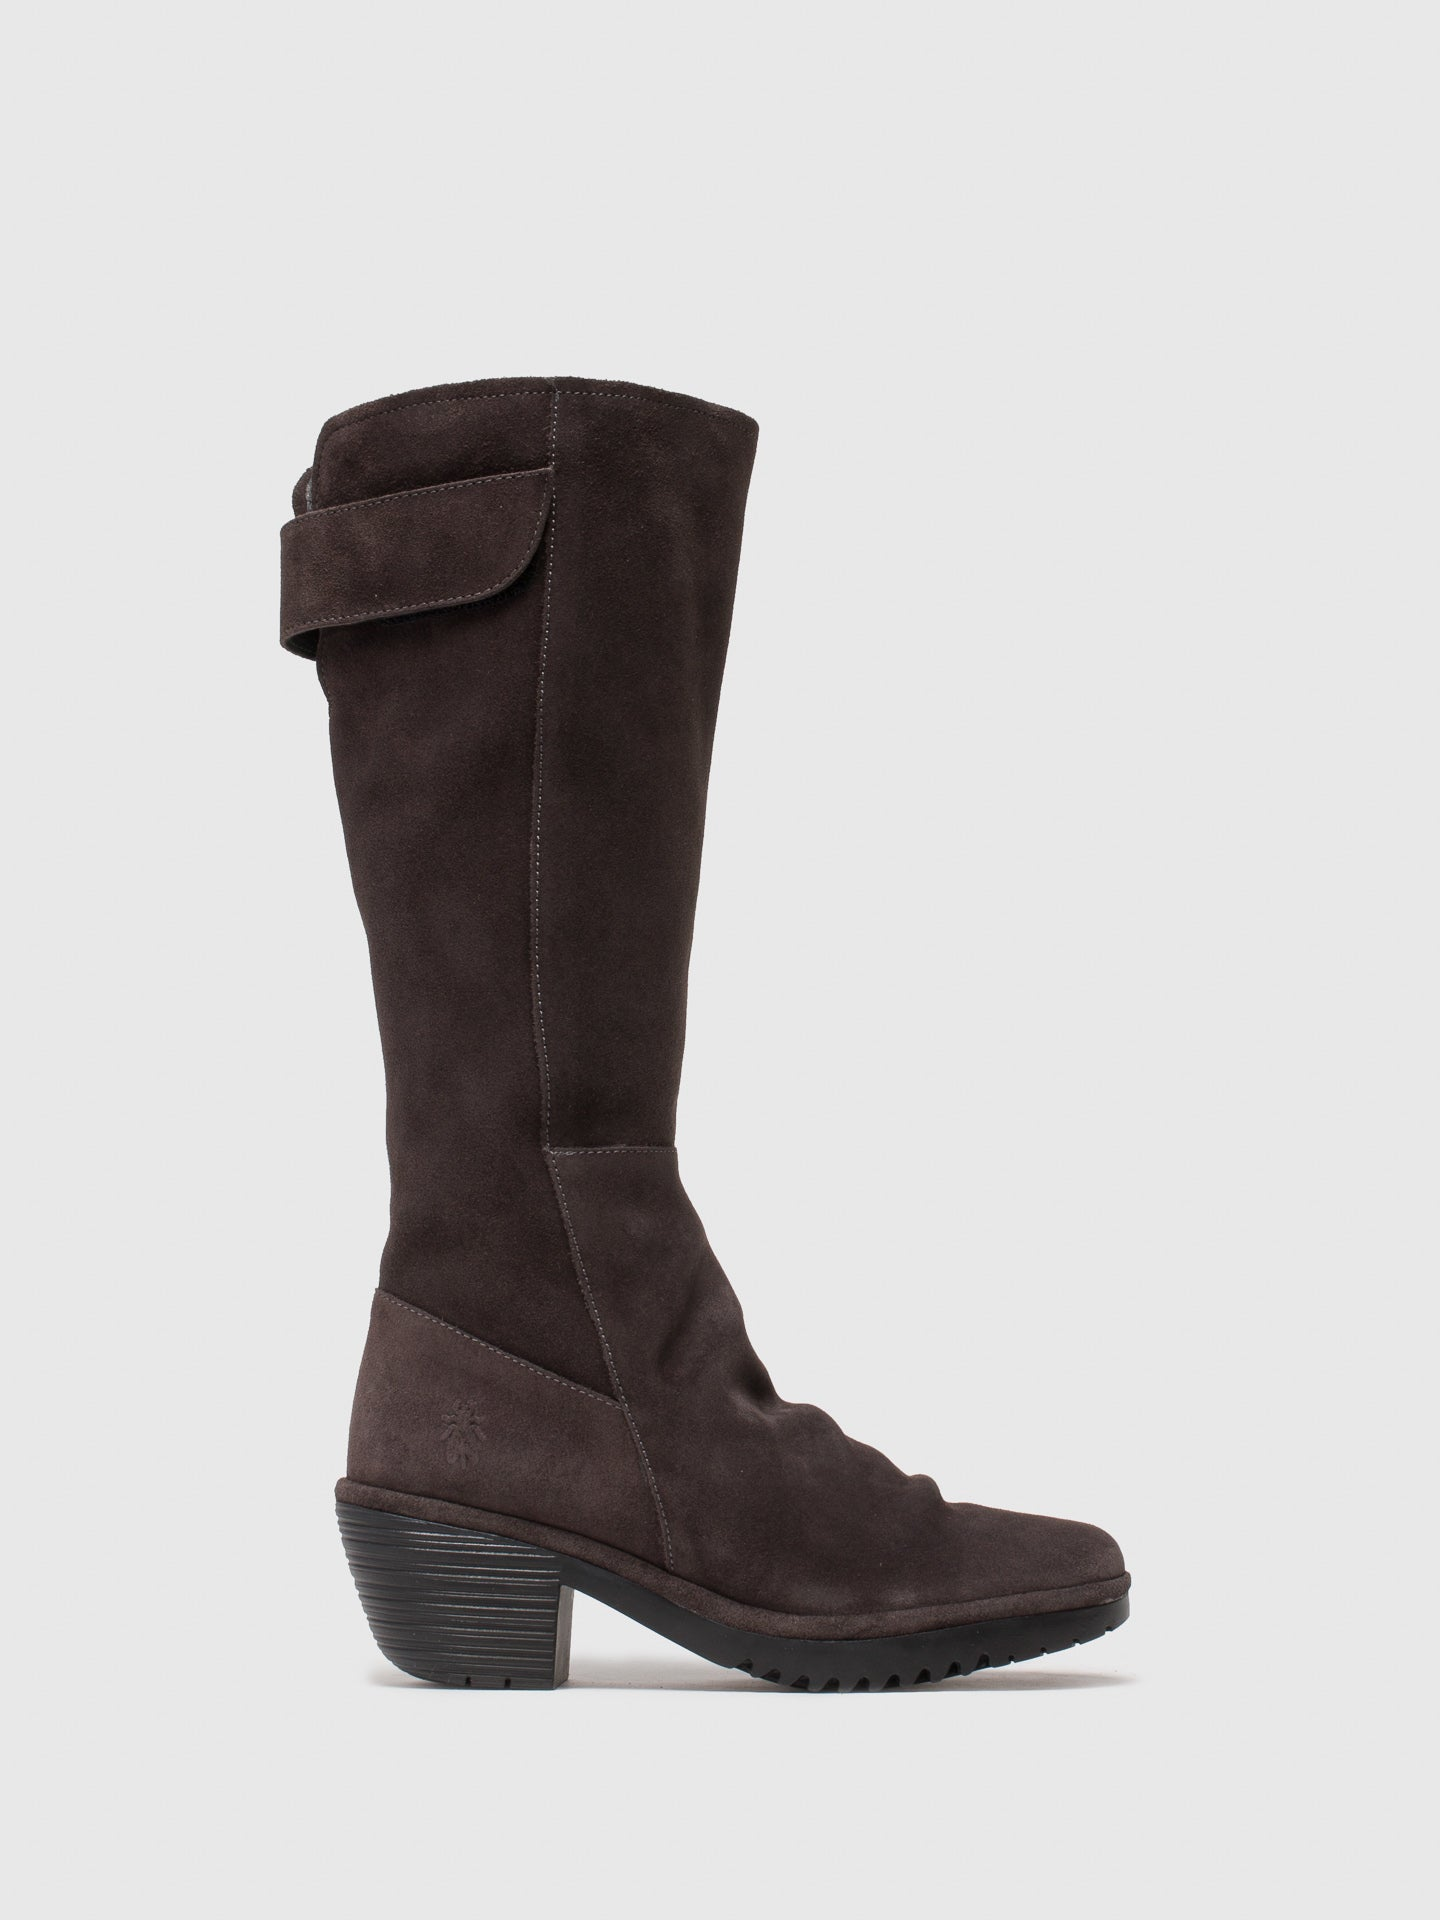 Fly London Gray Zip Up Boots